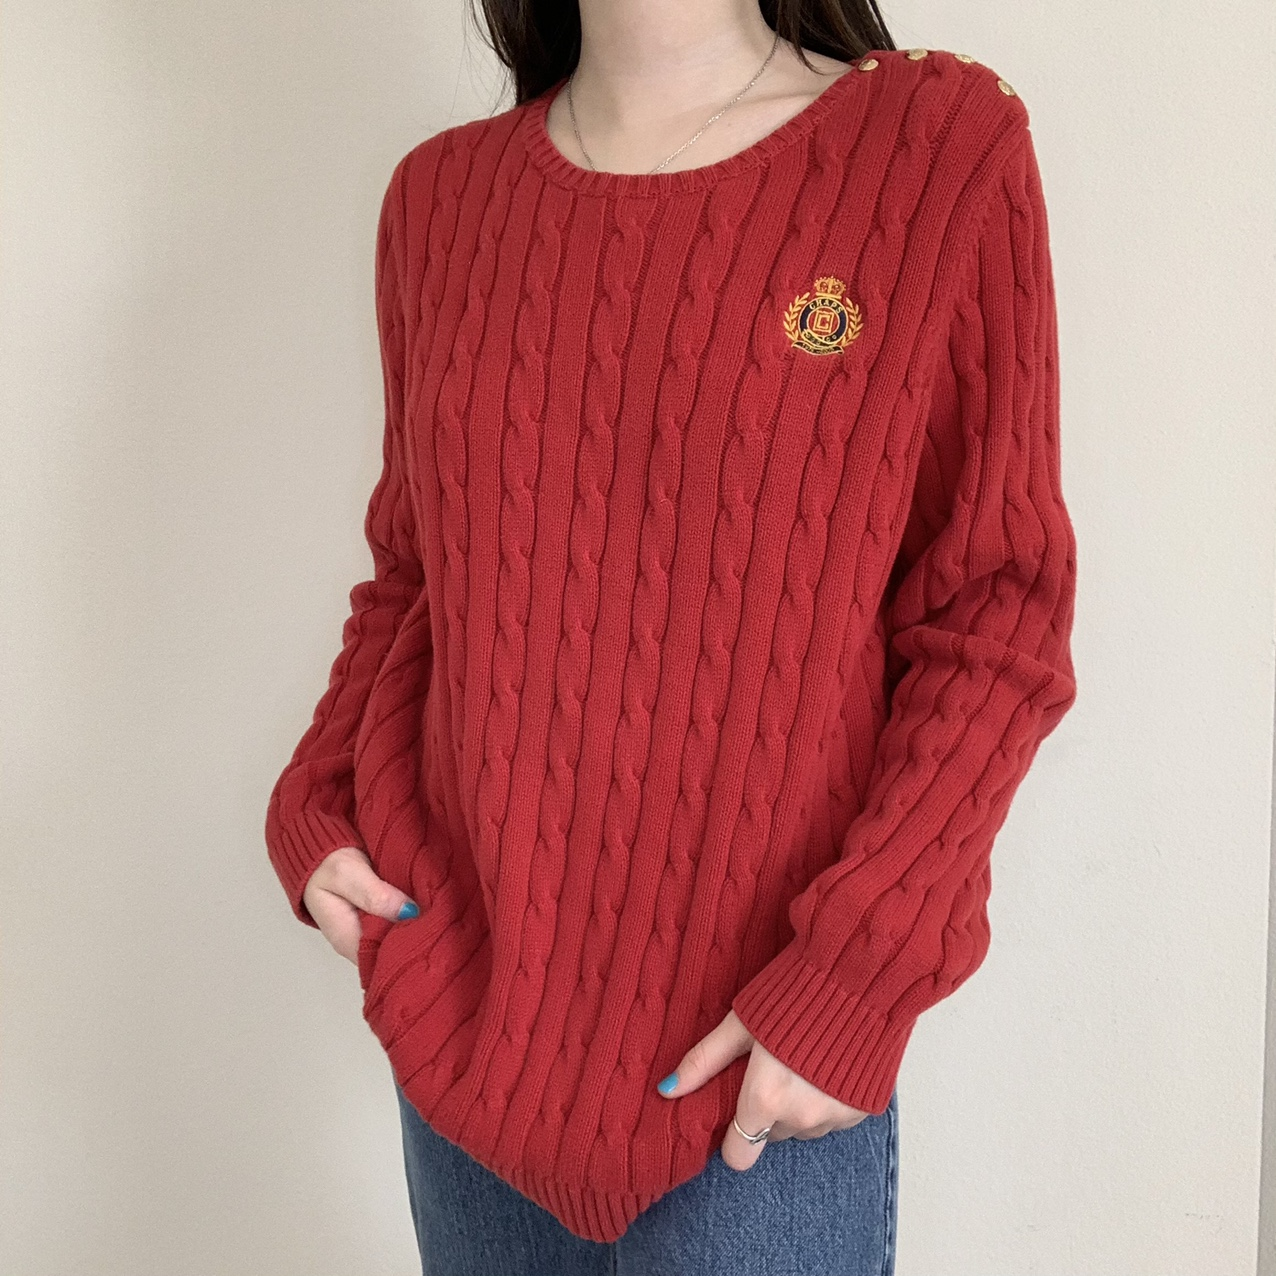 Product Image 1 - Chaps Red Cableknit Thick Heavy